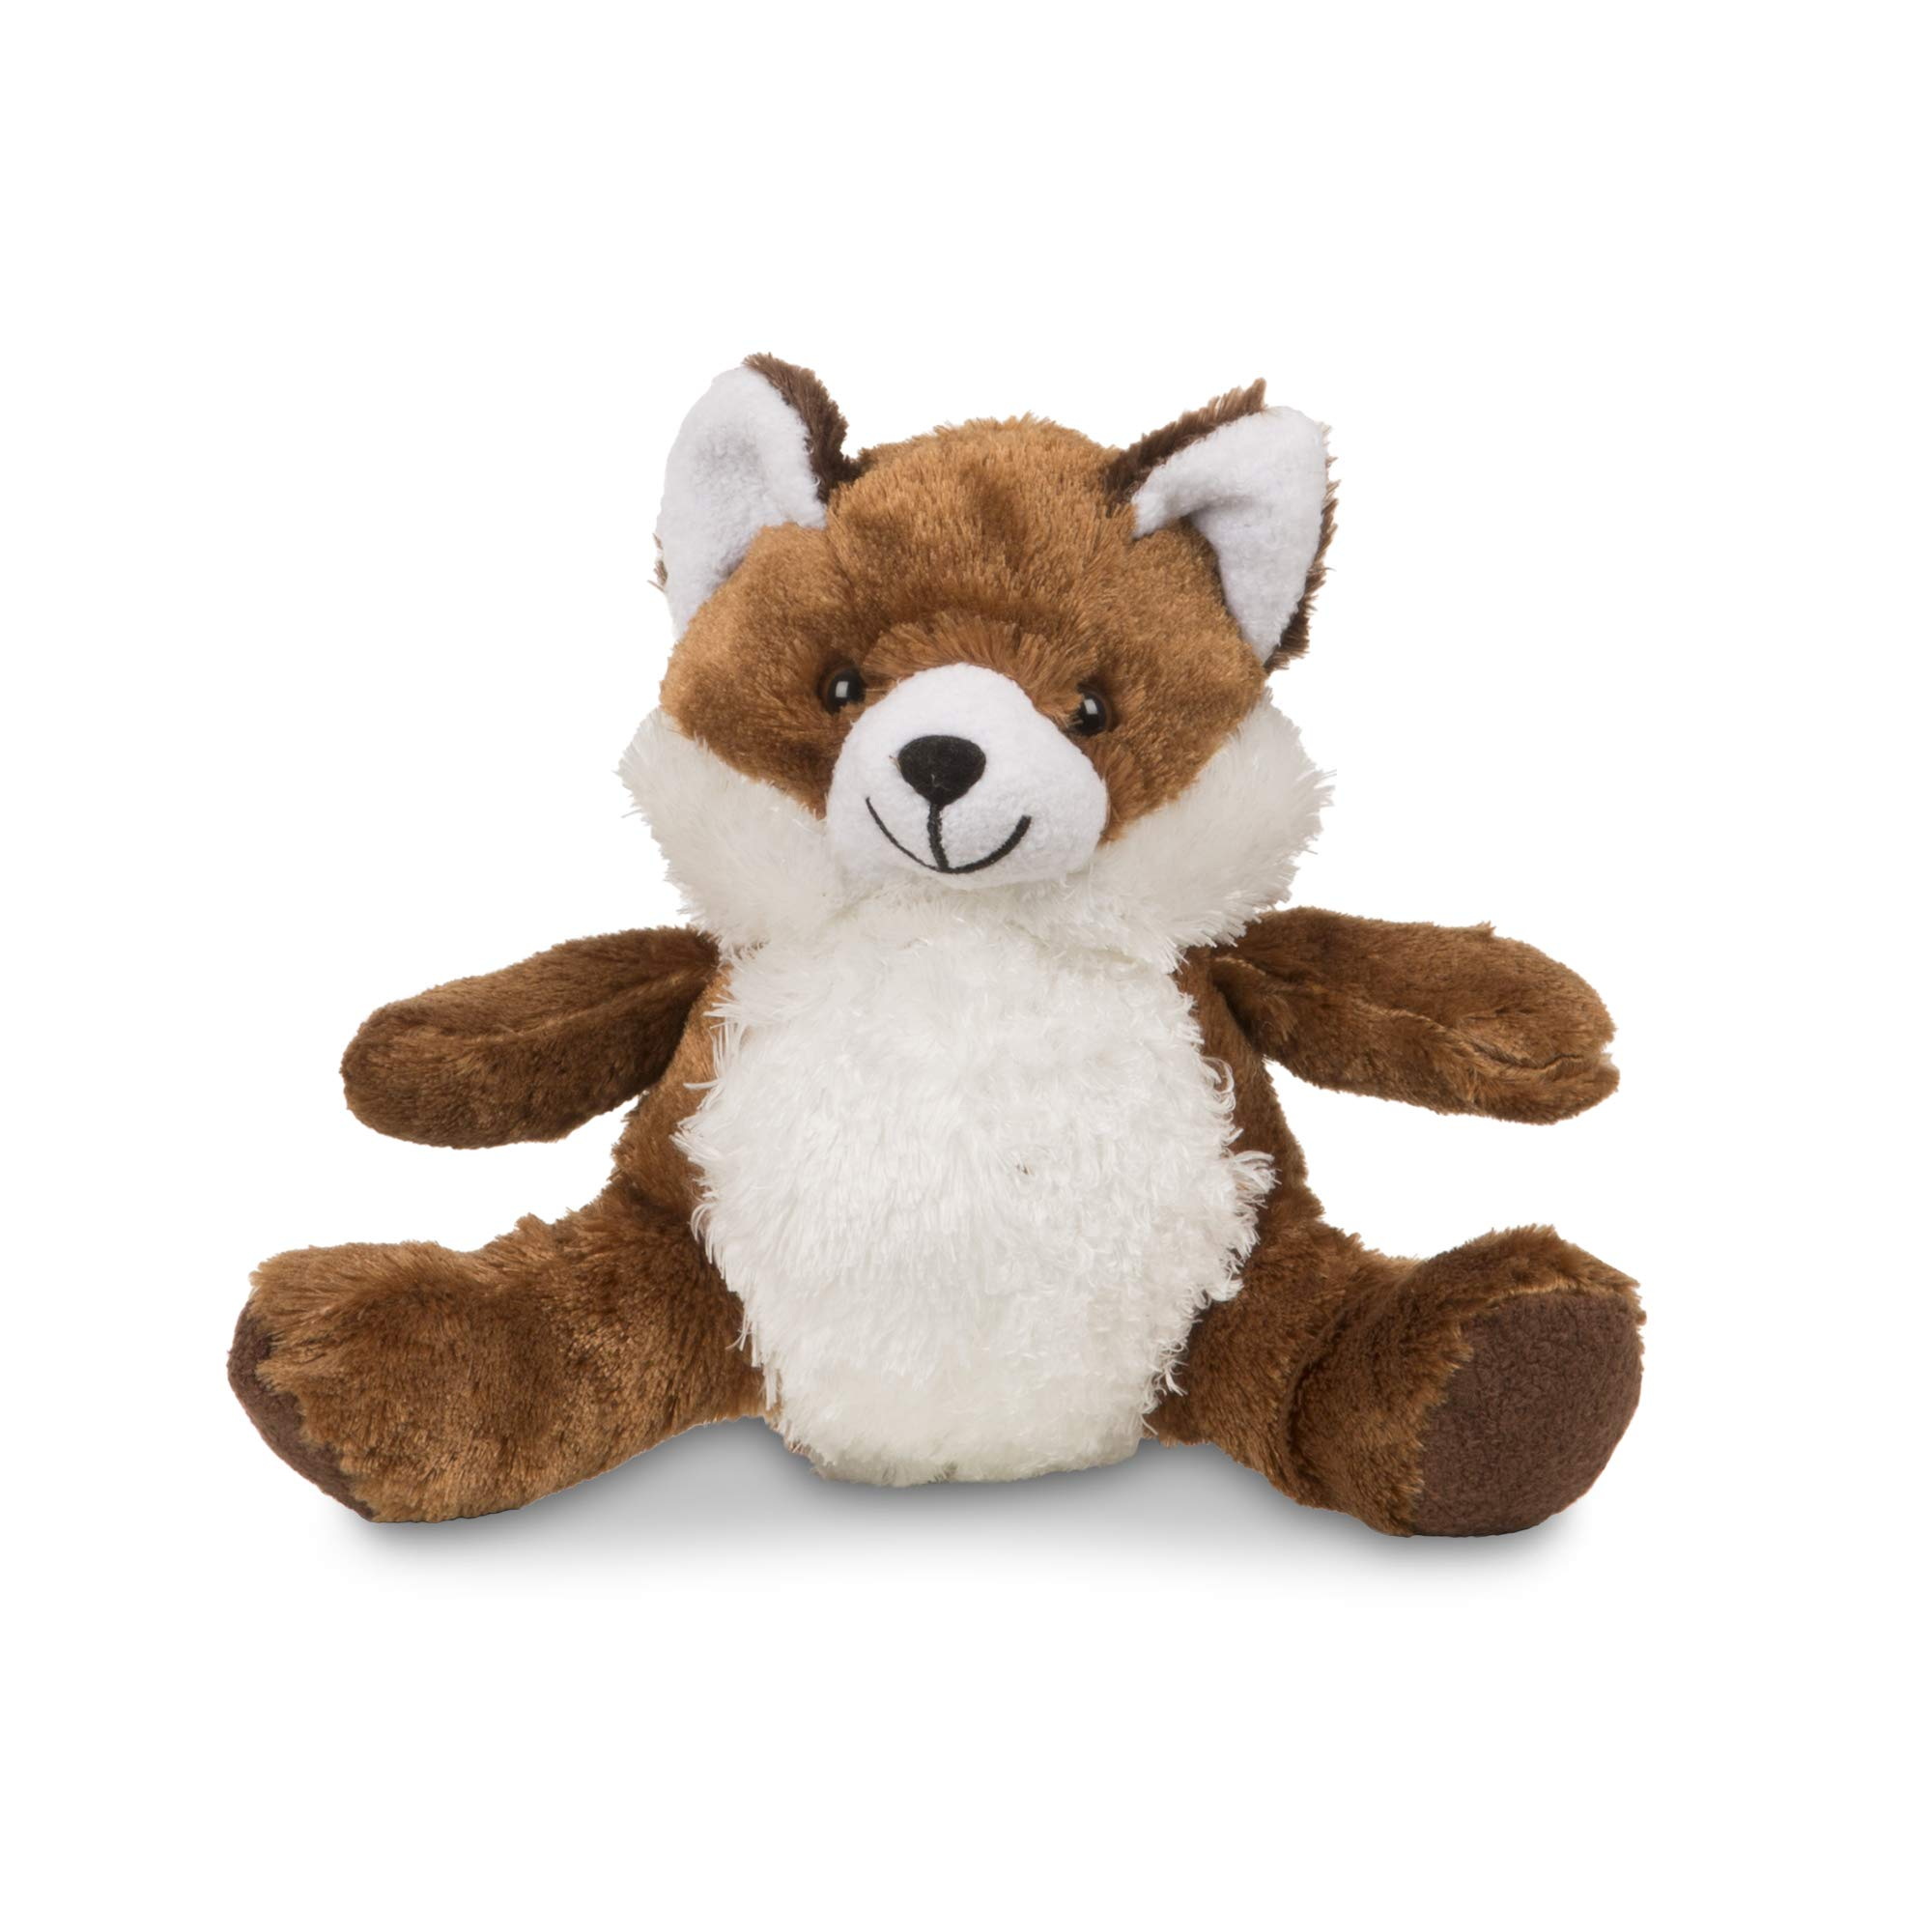 Melissa & Doug Frisky Fox Stuffed Animal Plush Toy (Great Gift for Girls and Boys - Best for Babies and Toddlers, All Ages)